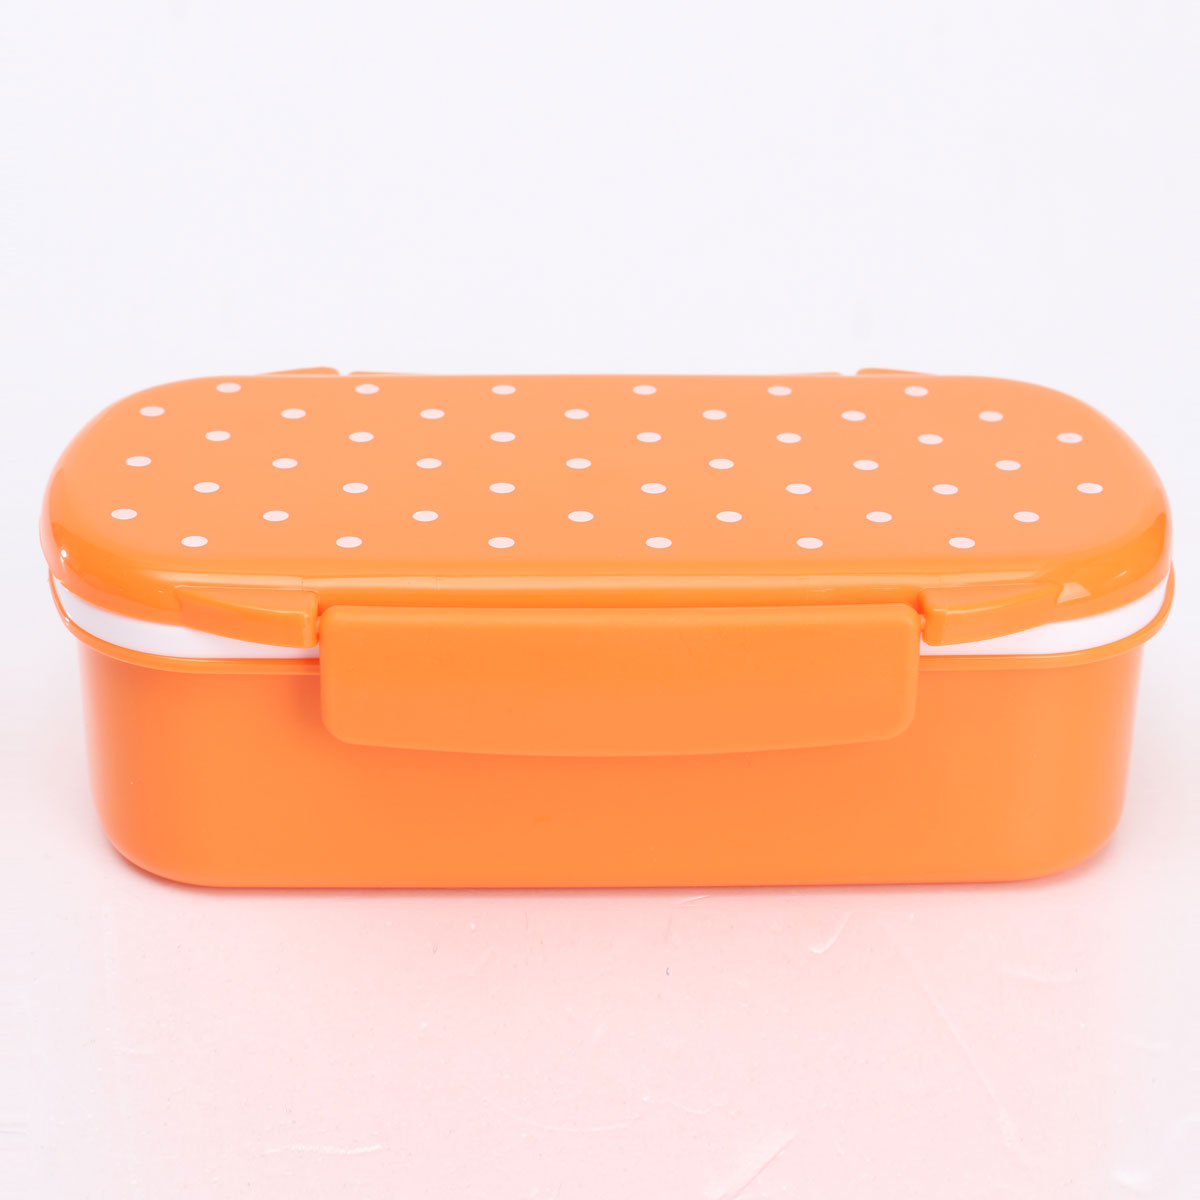 Cute Plastic Lunch Box Food Container Storage Box Portable ...